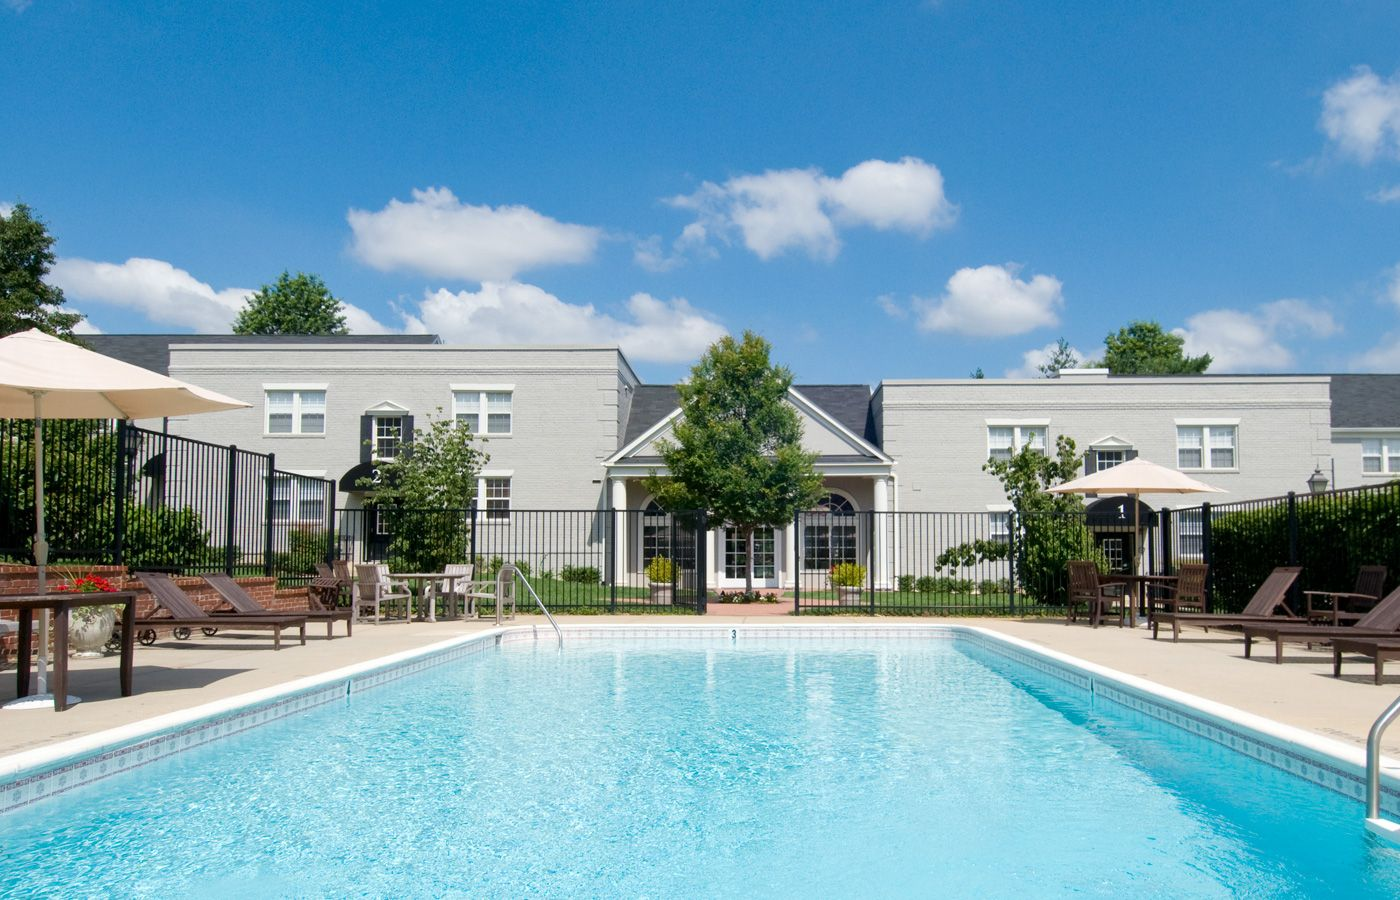 877 757 4252 | 1 3 Bedroom | 1 2 Bath Myerton Apartments 108 S Courthouse  Rd, Arlington, VA. 22204 | Washington DC Metro Apartments For Rent |  Pinterest ...